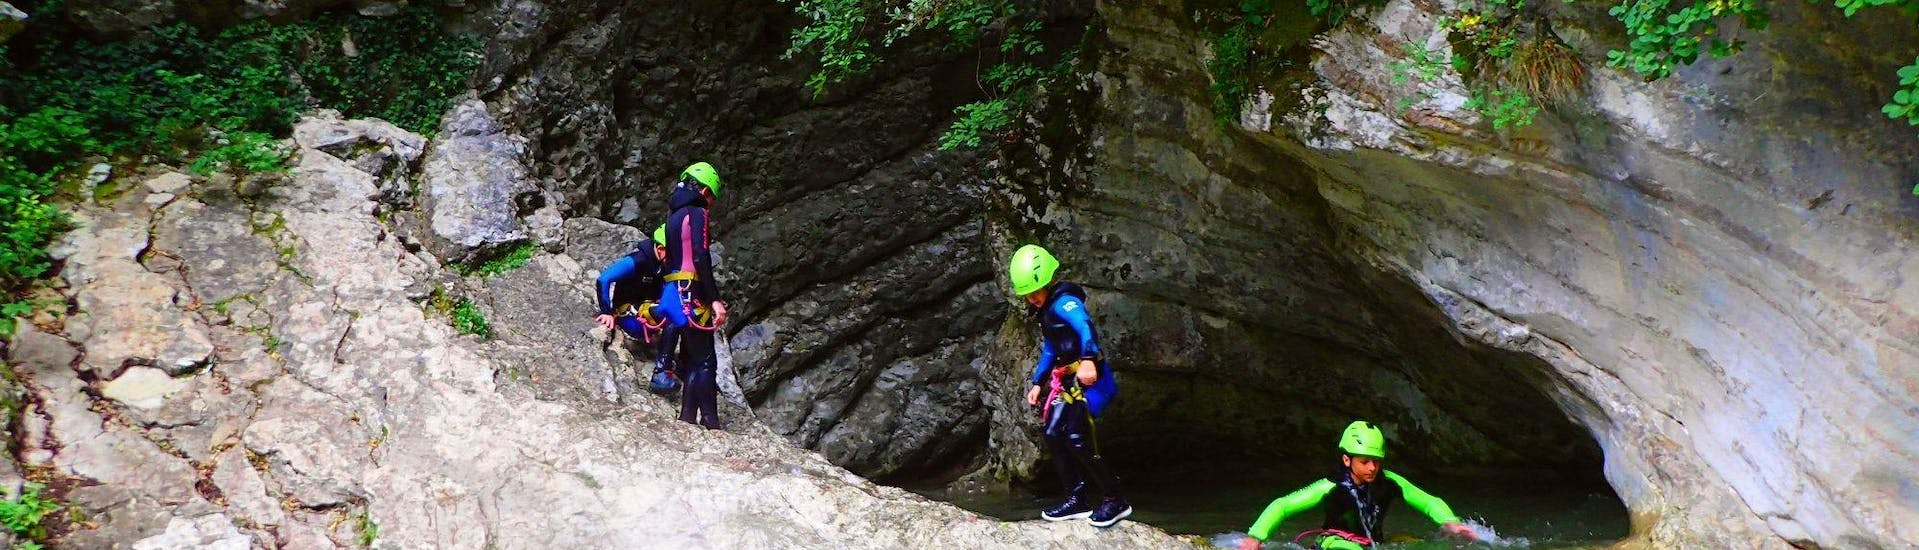 Children are doing Canyoning in the Canyoning in Torrente Vione - Gumpenfever organized by Skyclimber.